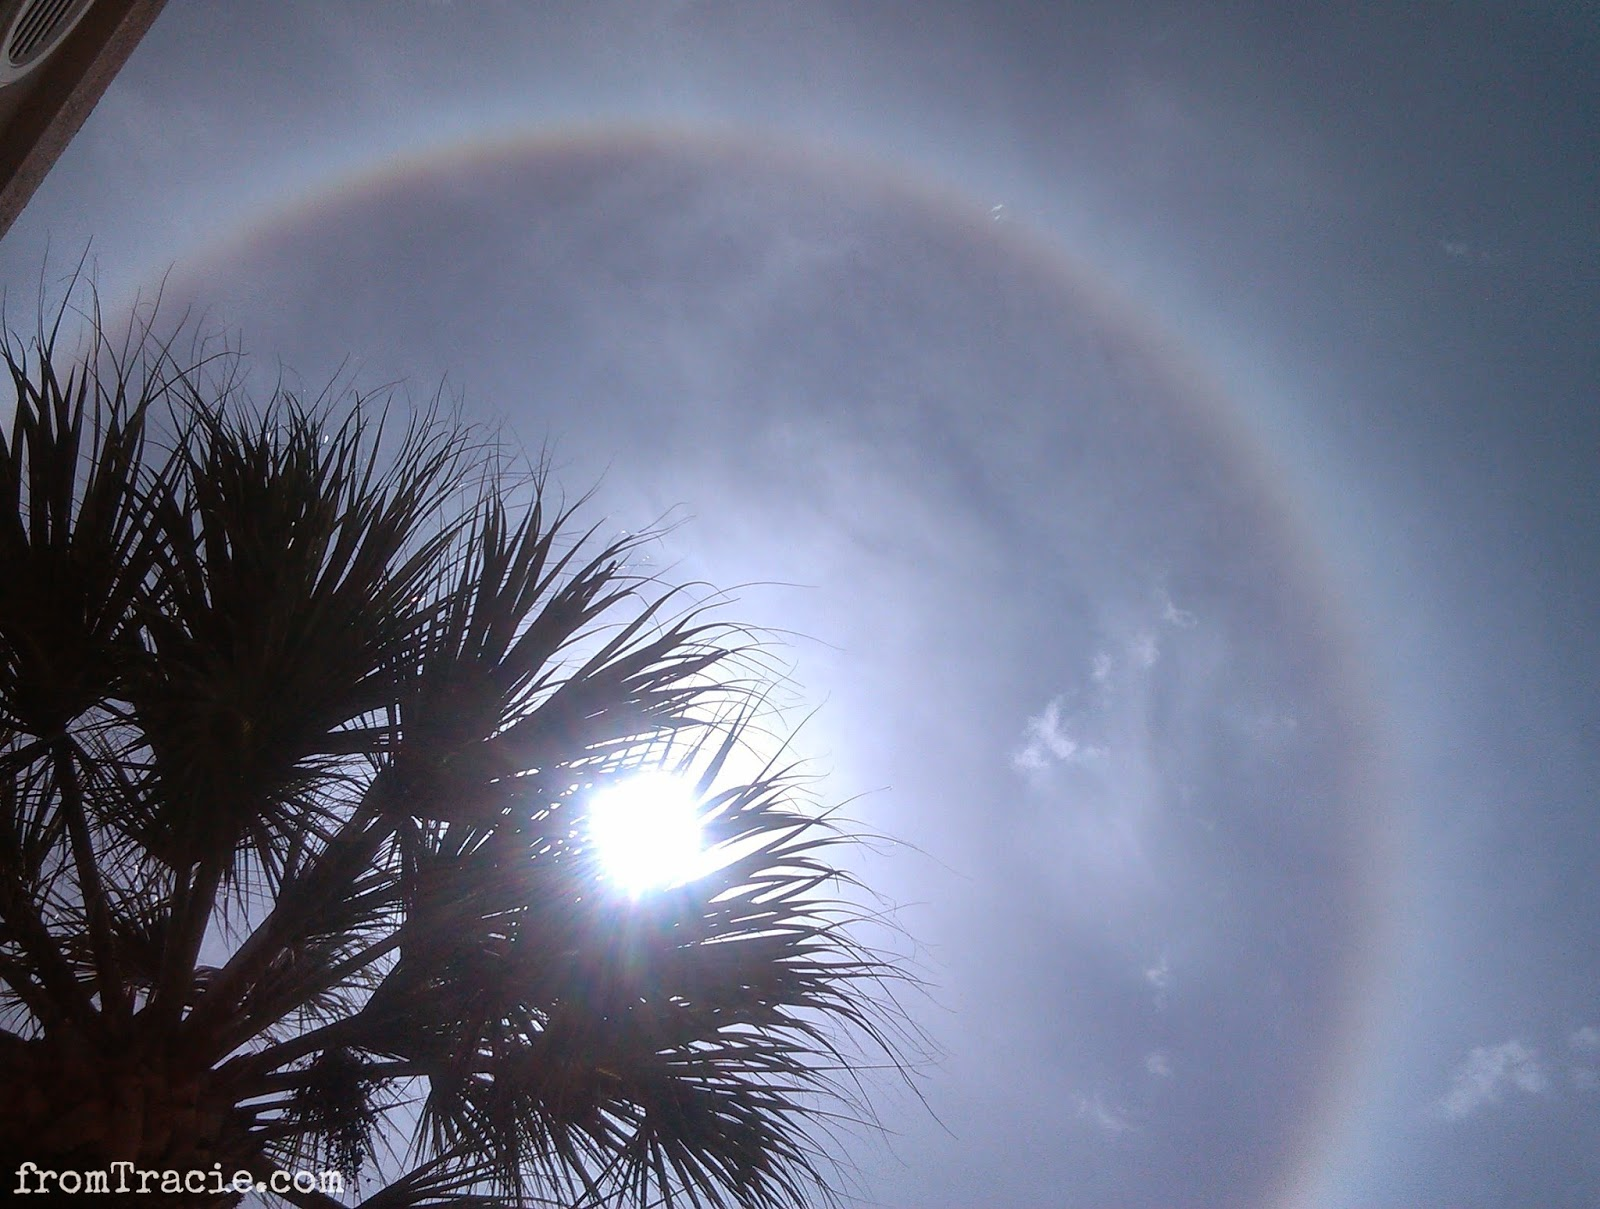 sun shining through palm tree with halo